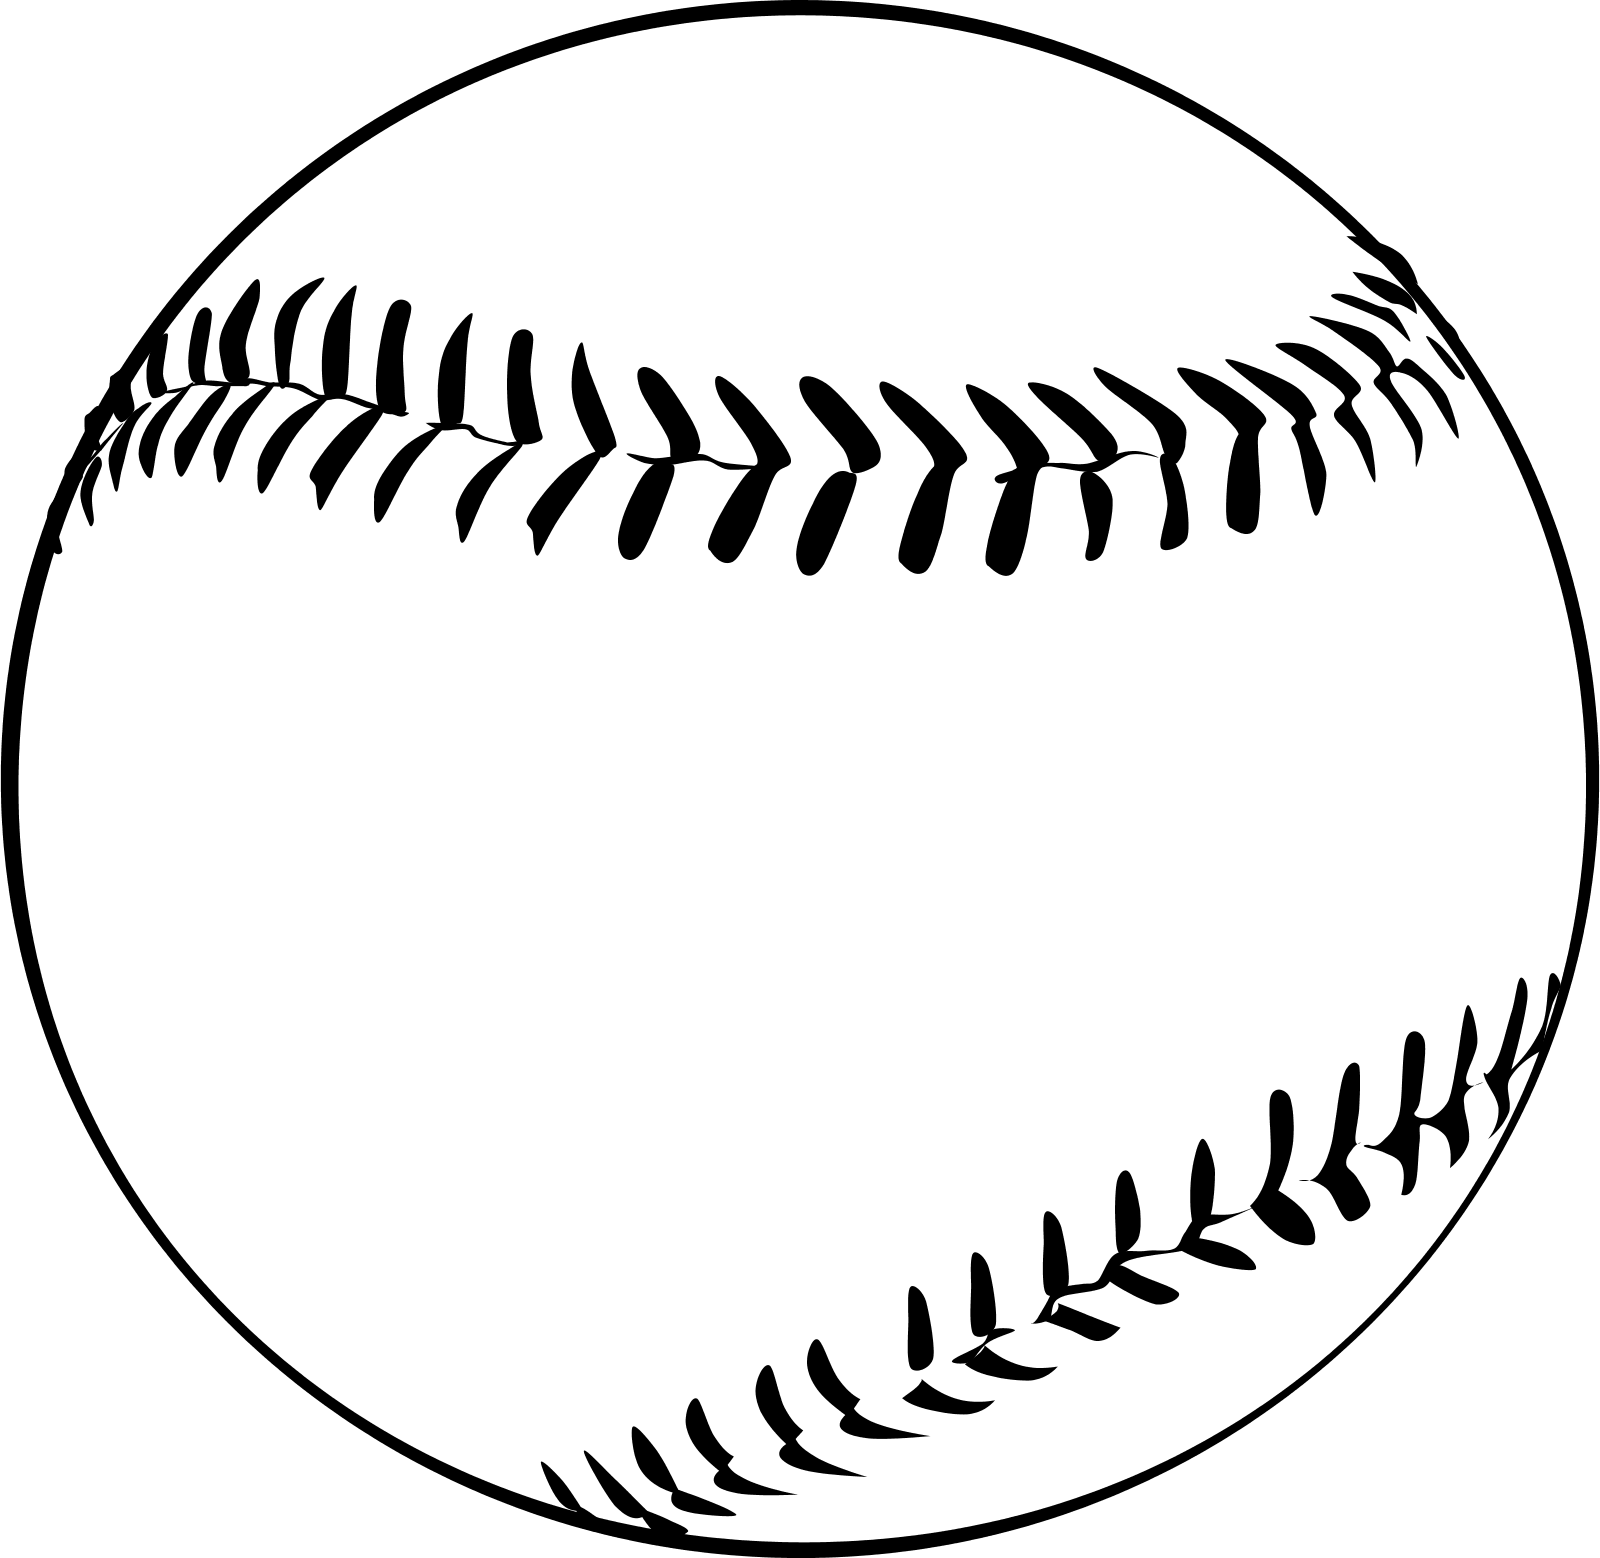 Zucchini clipart marrow.  collection of baseball